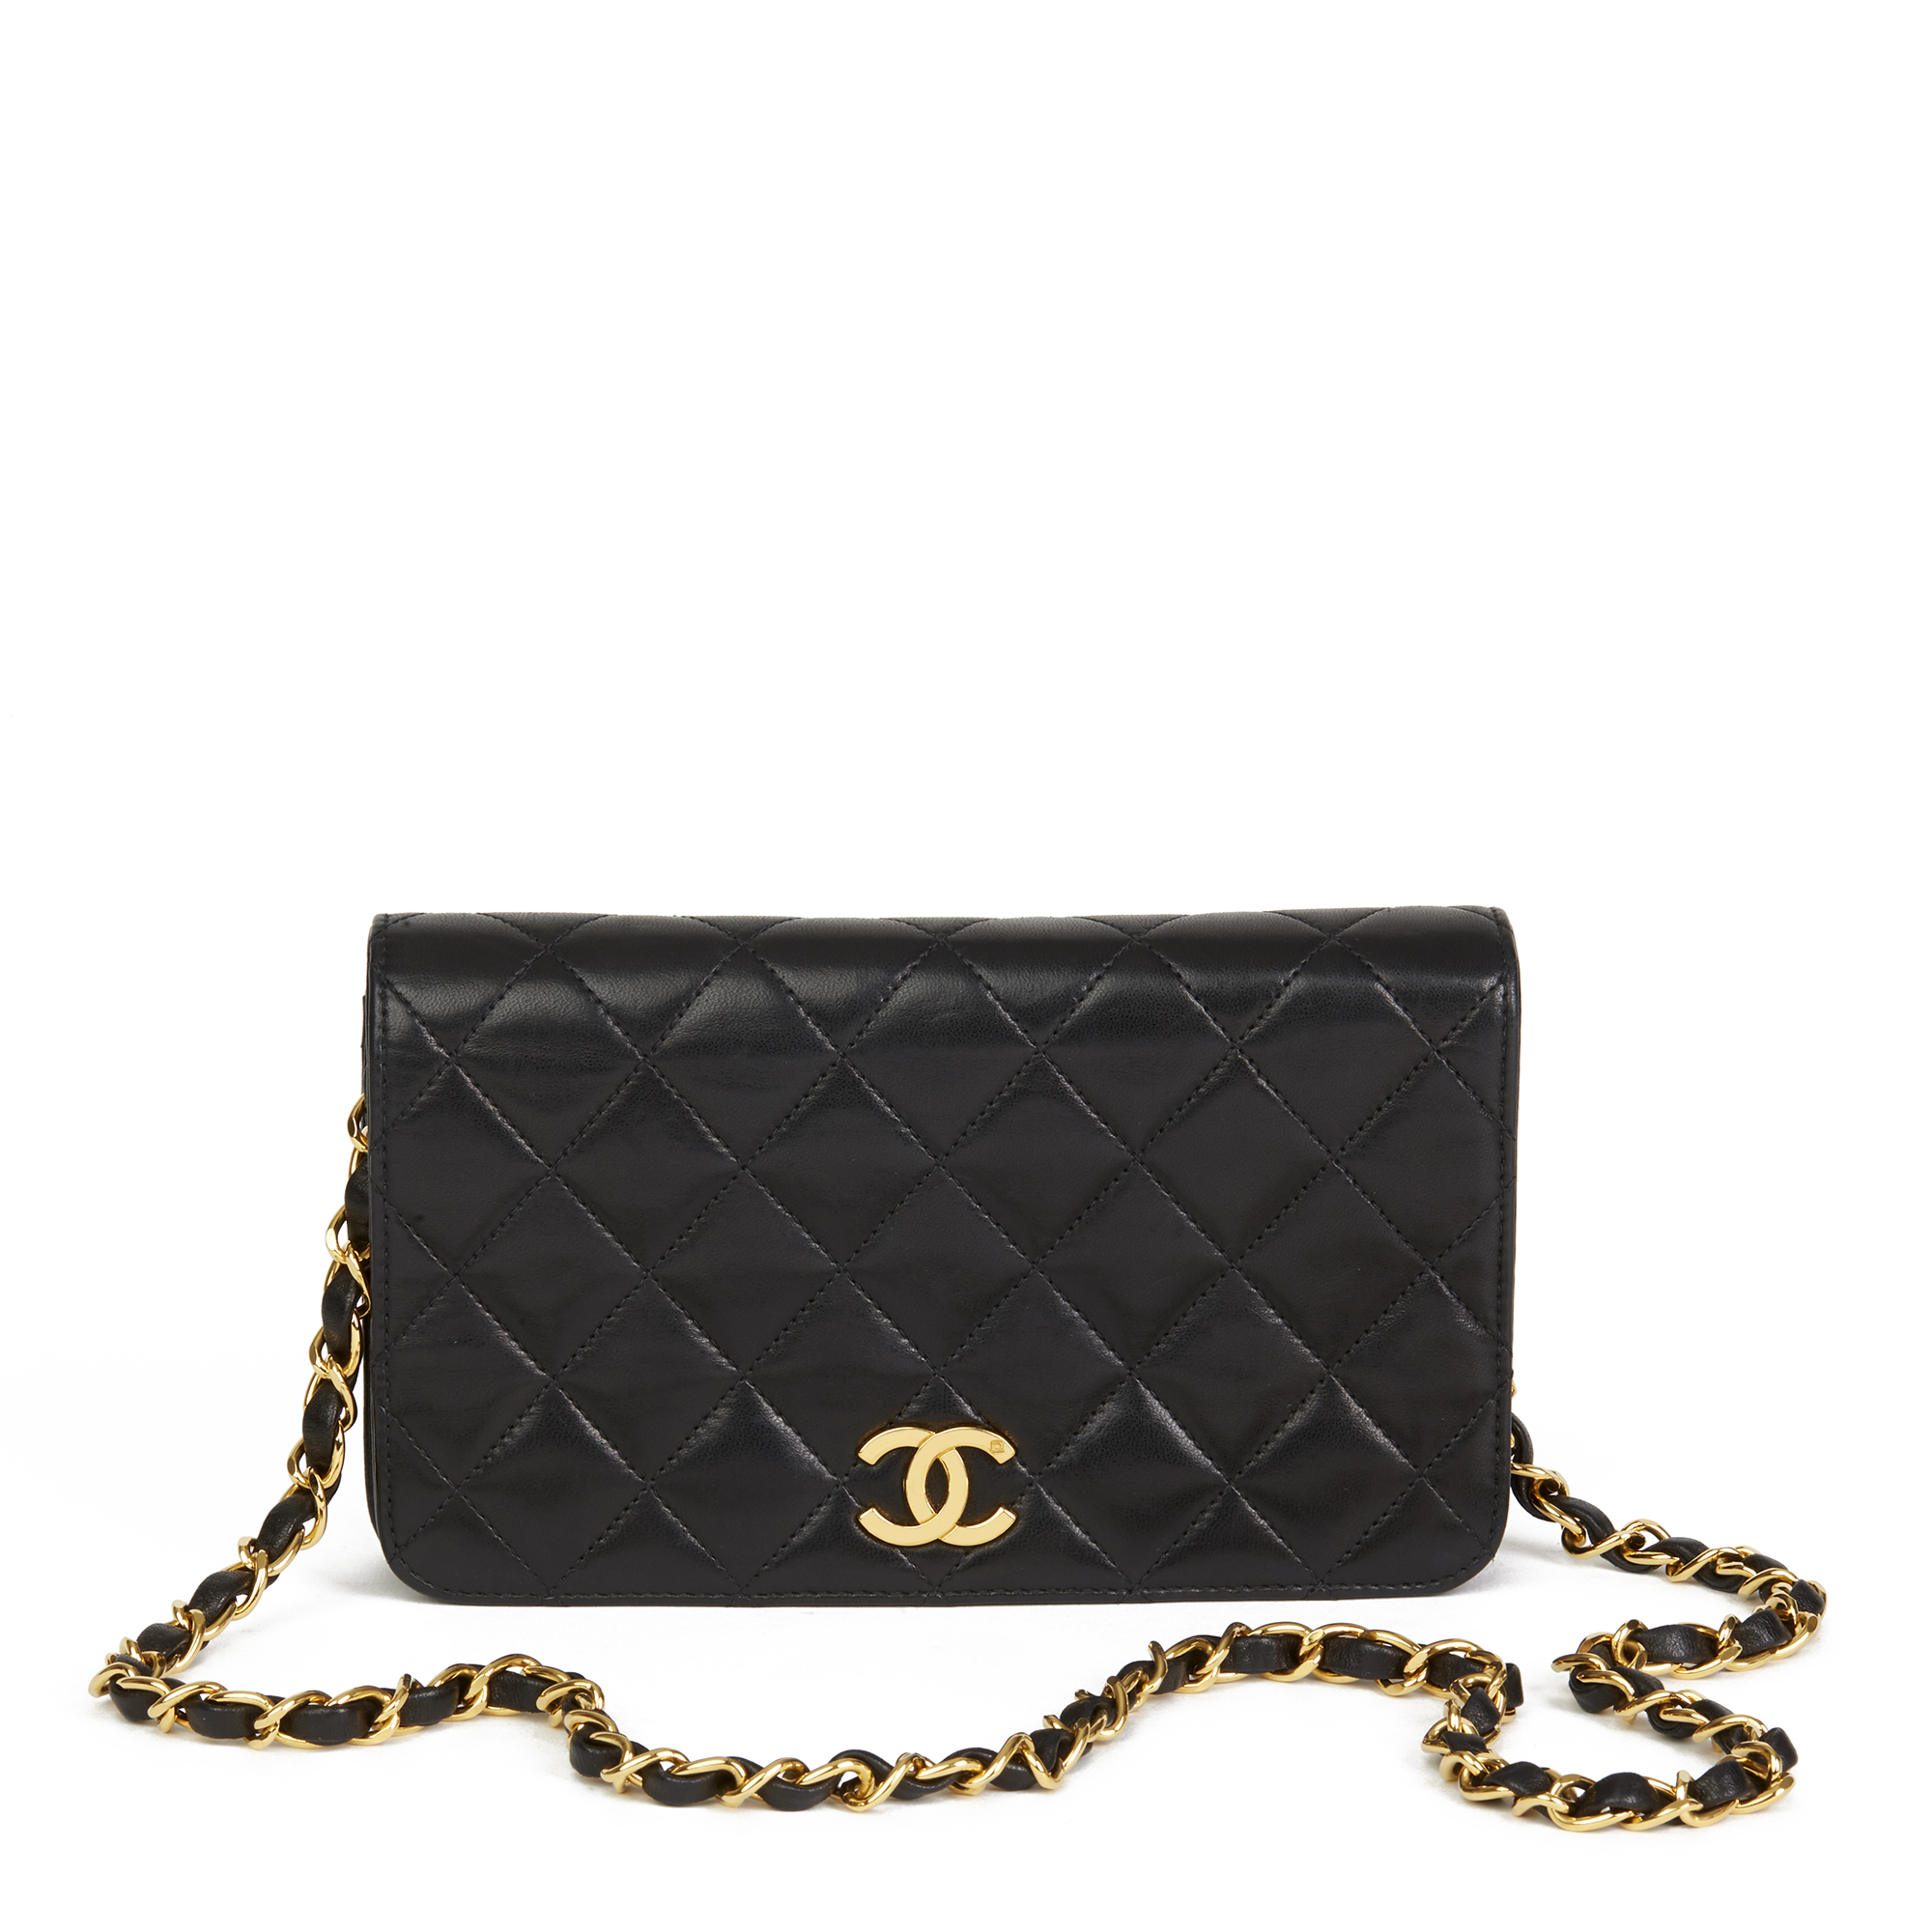 8860b1c68d CHANEL BLACK QUILTED LAMBSKIN VINTAGE MINI FLAP BAG HB2611 | eBay